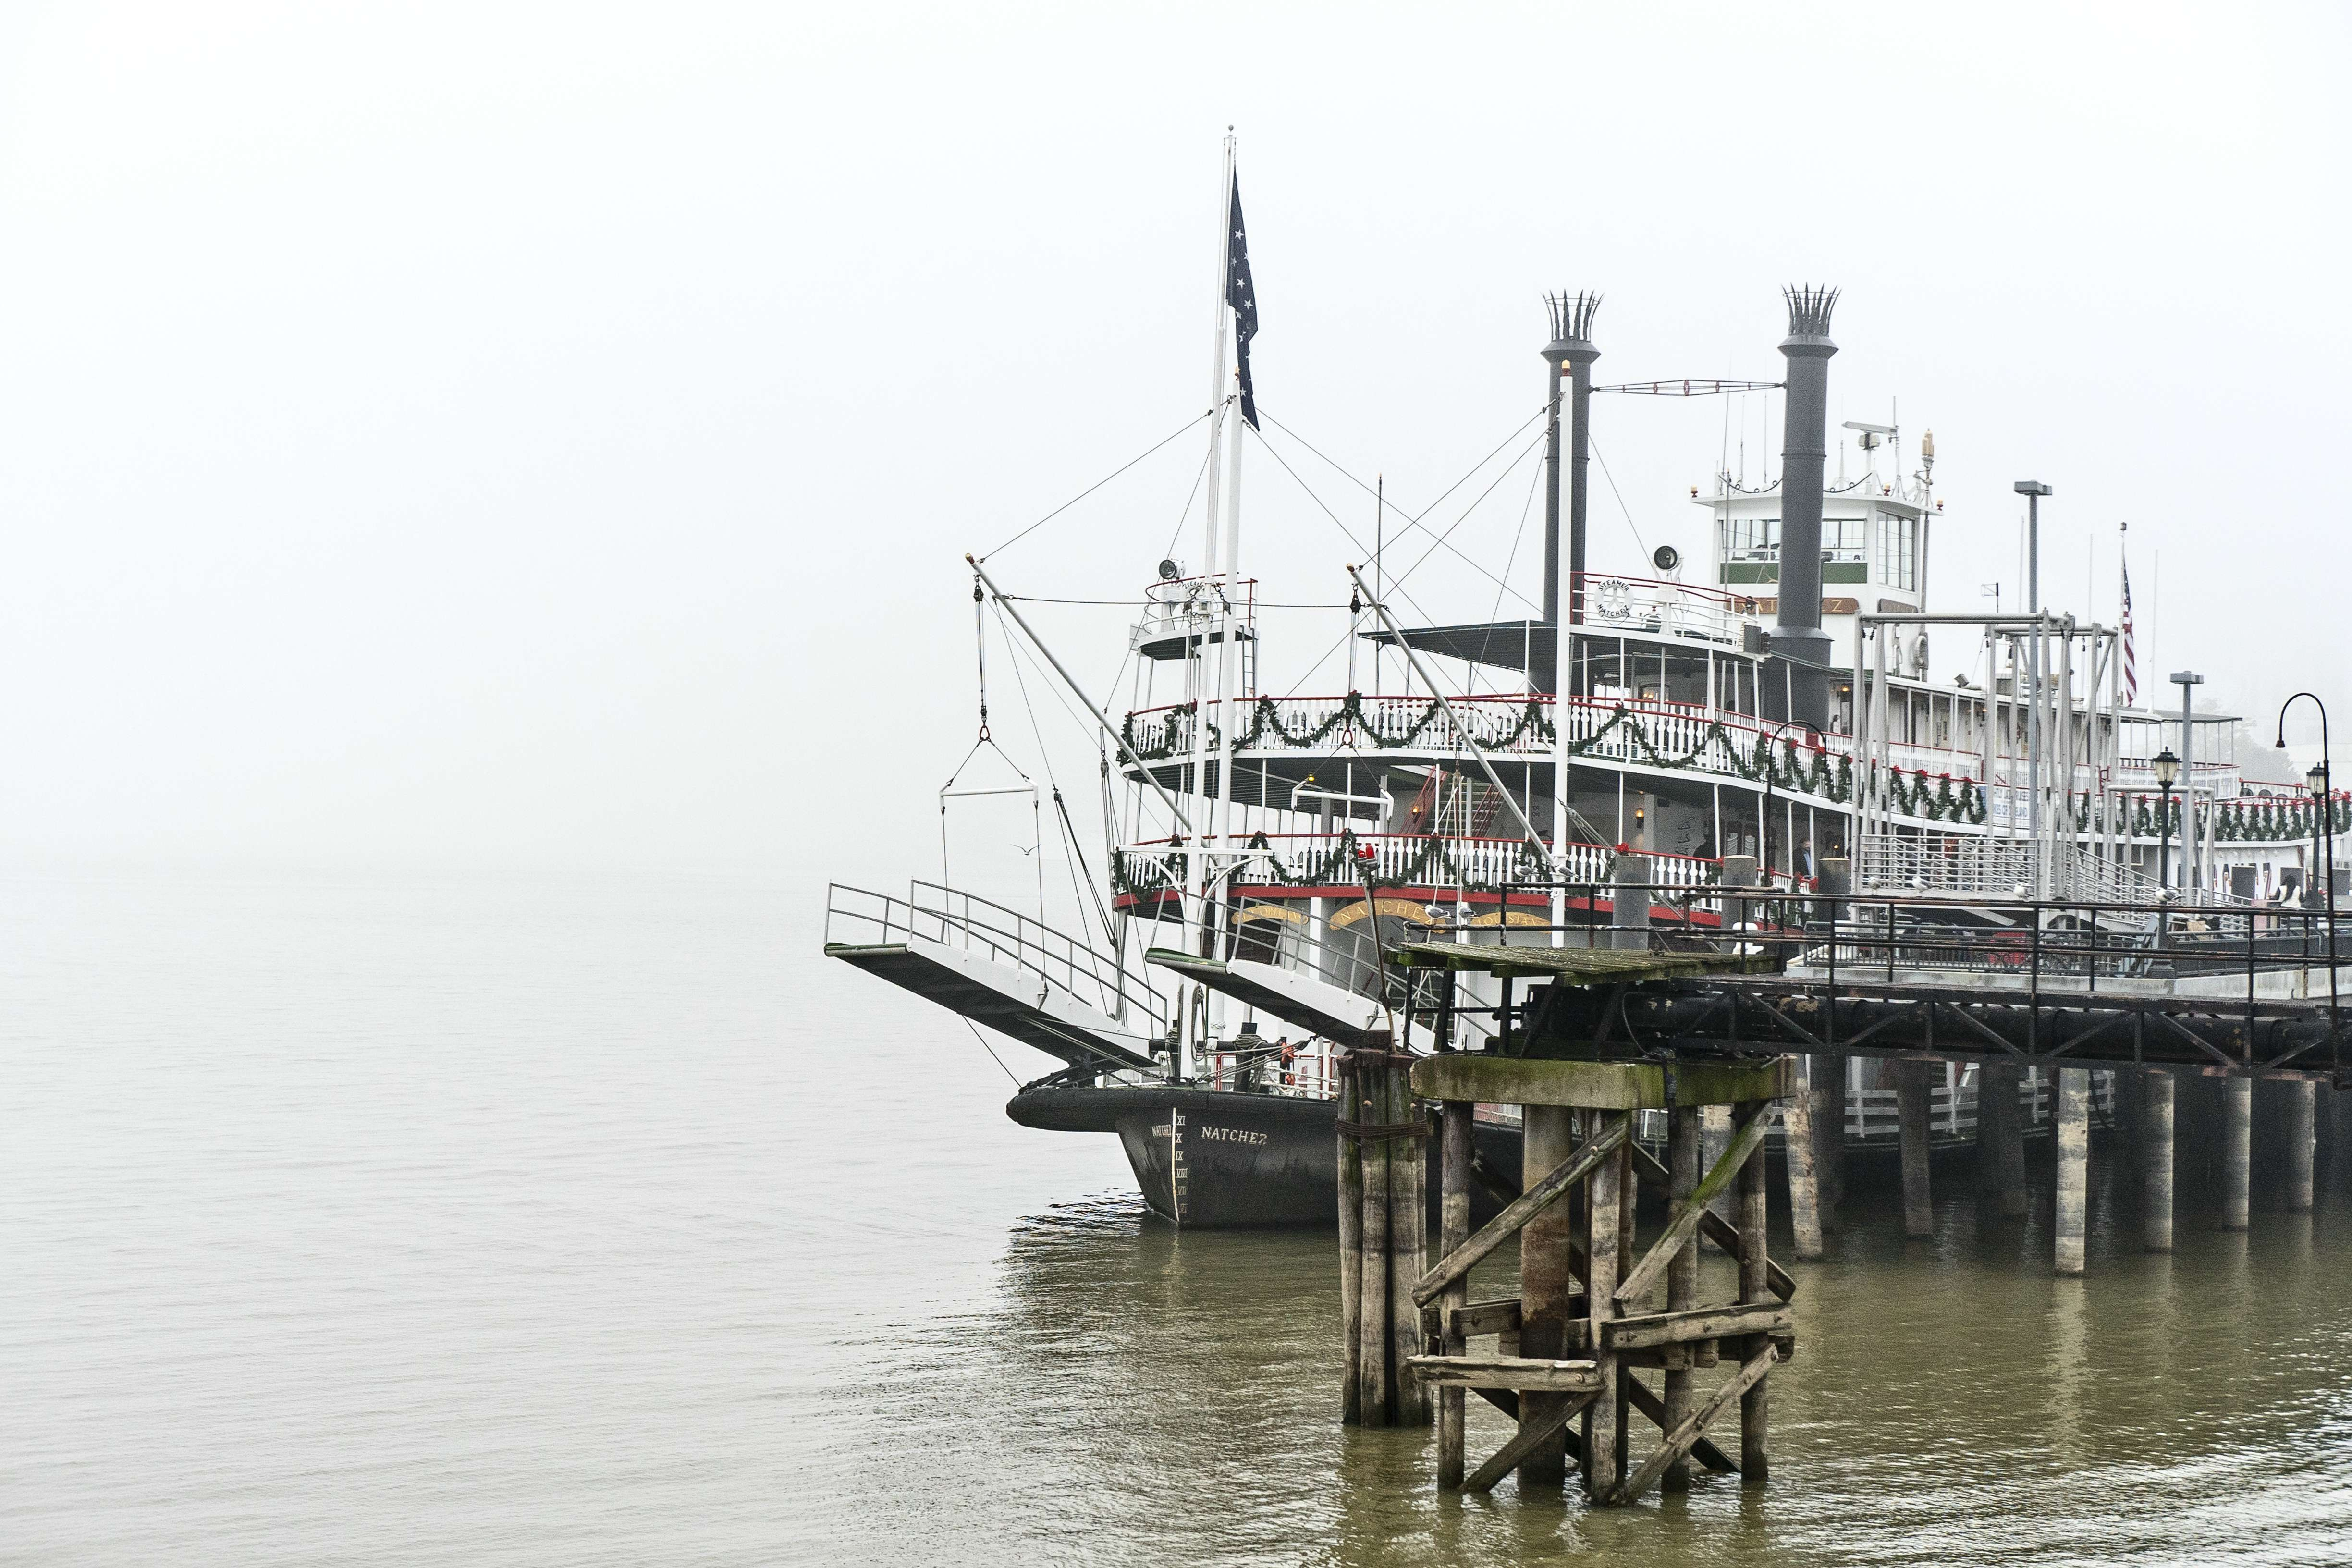 The Natchez steamboat at the foot of The Mississippi River in the fog.